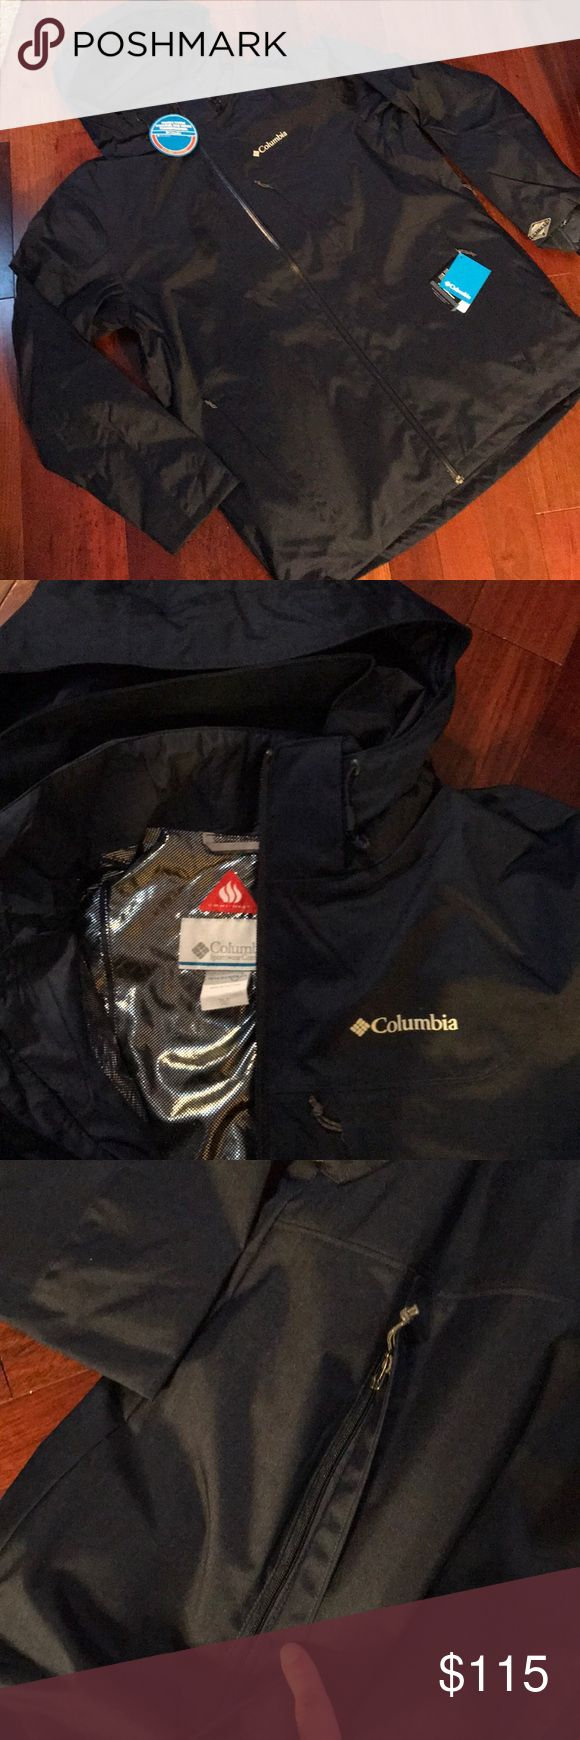 Columbia Whirlibird Interchange Jacket NWT! Navy men's Columbia Interchange Omni Heat jacket. See picture 8 for features. Also has adjustable removable hood, adjustable snap back powder skirt, and goggle pocket. Removable jacket. Open to offers! Columbia Jackets & Coats